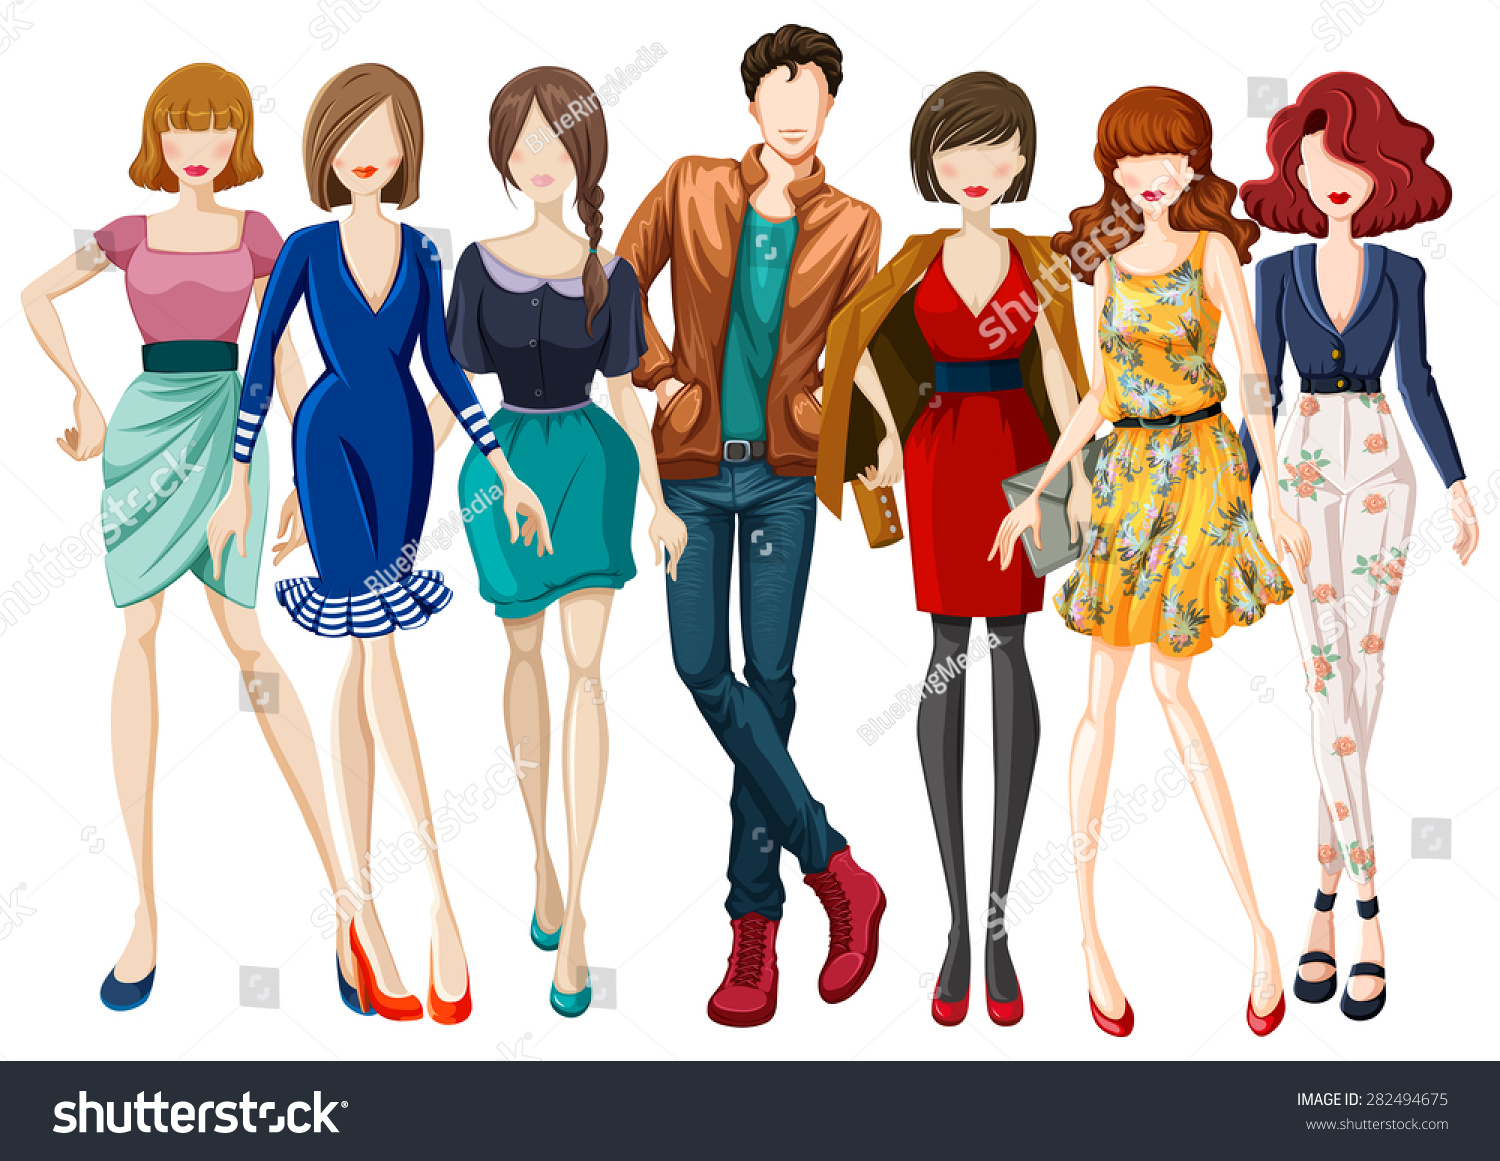 2019 year look- Clothes fashionable photo